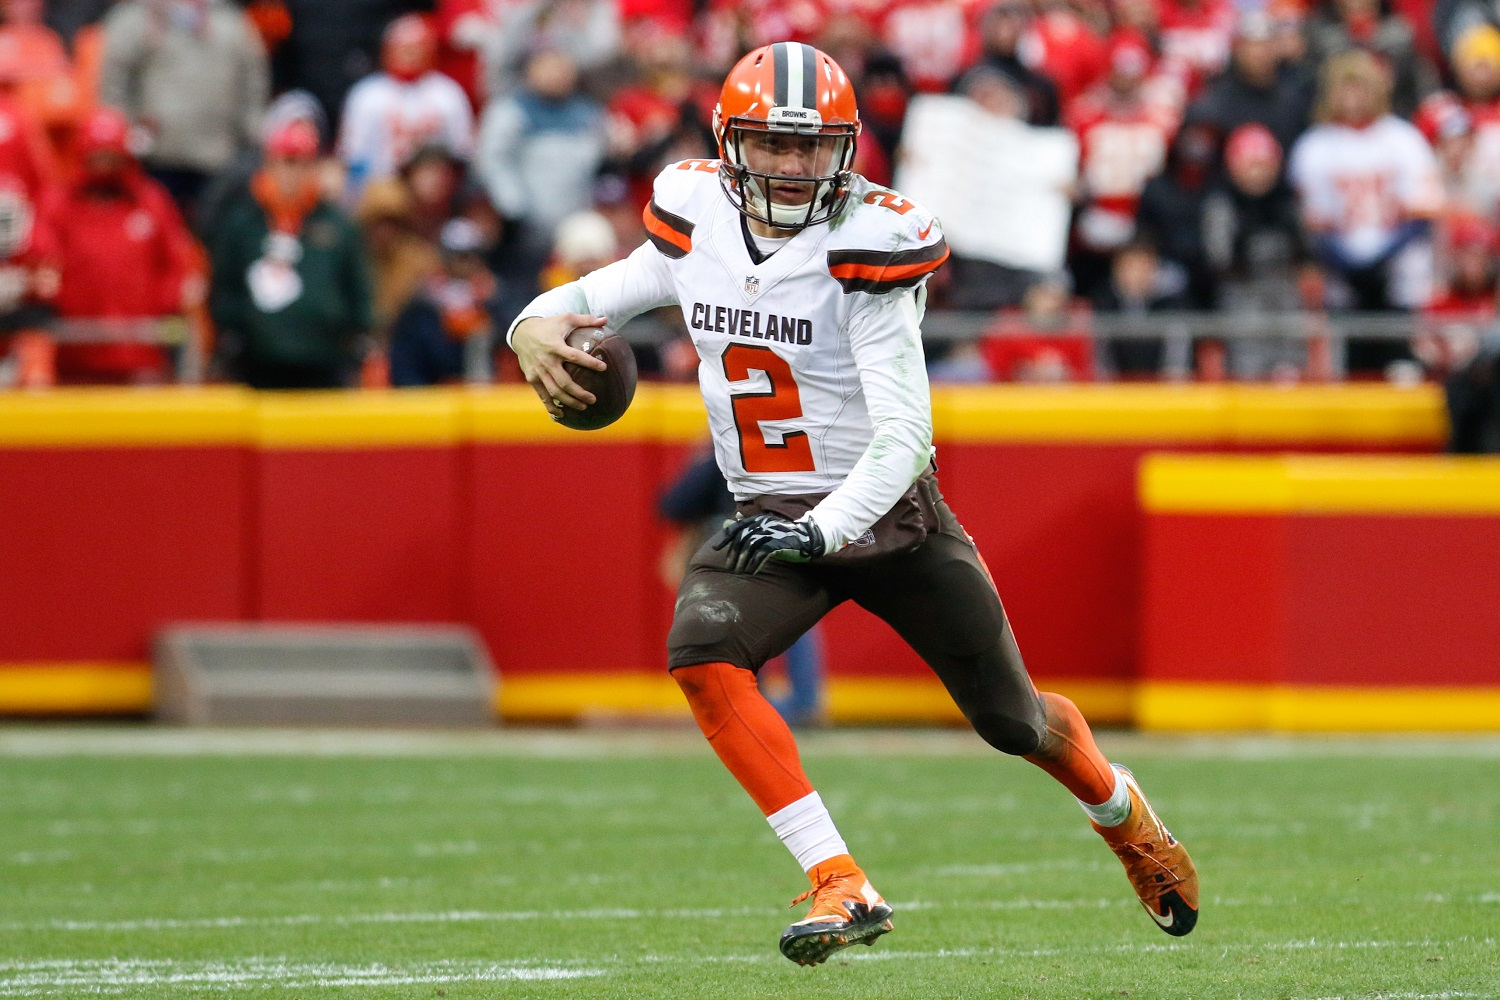 Johnny Manziel last two seasons in the NFL with the Cleveland Browns